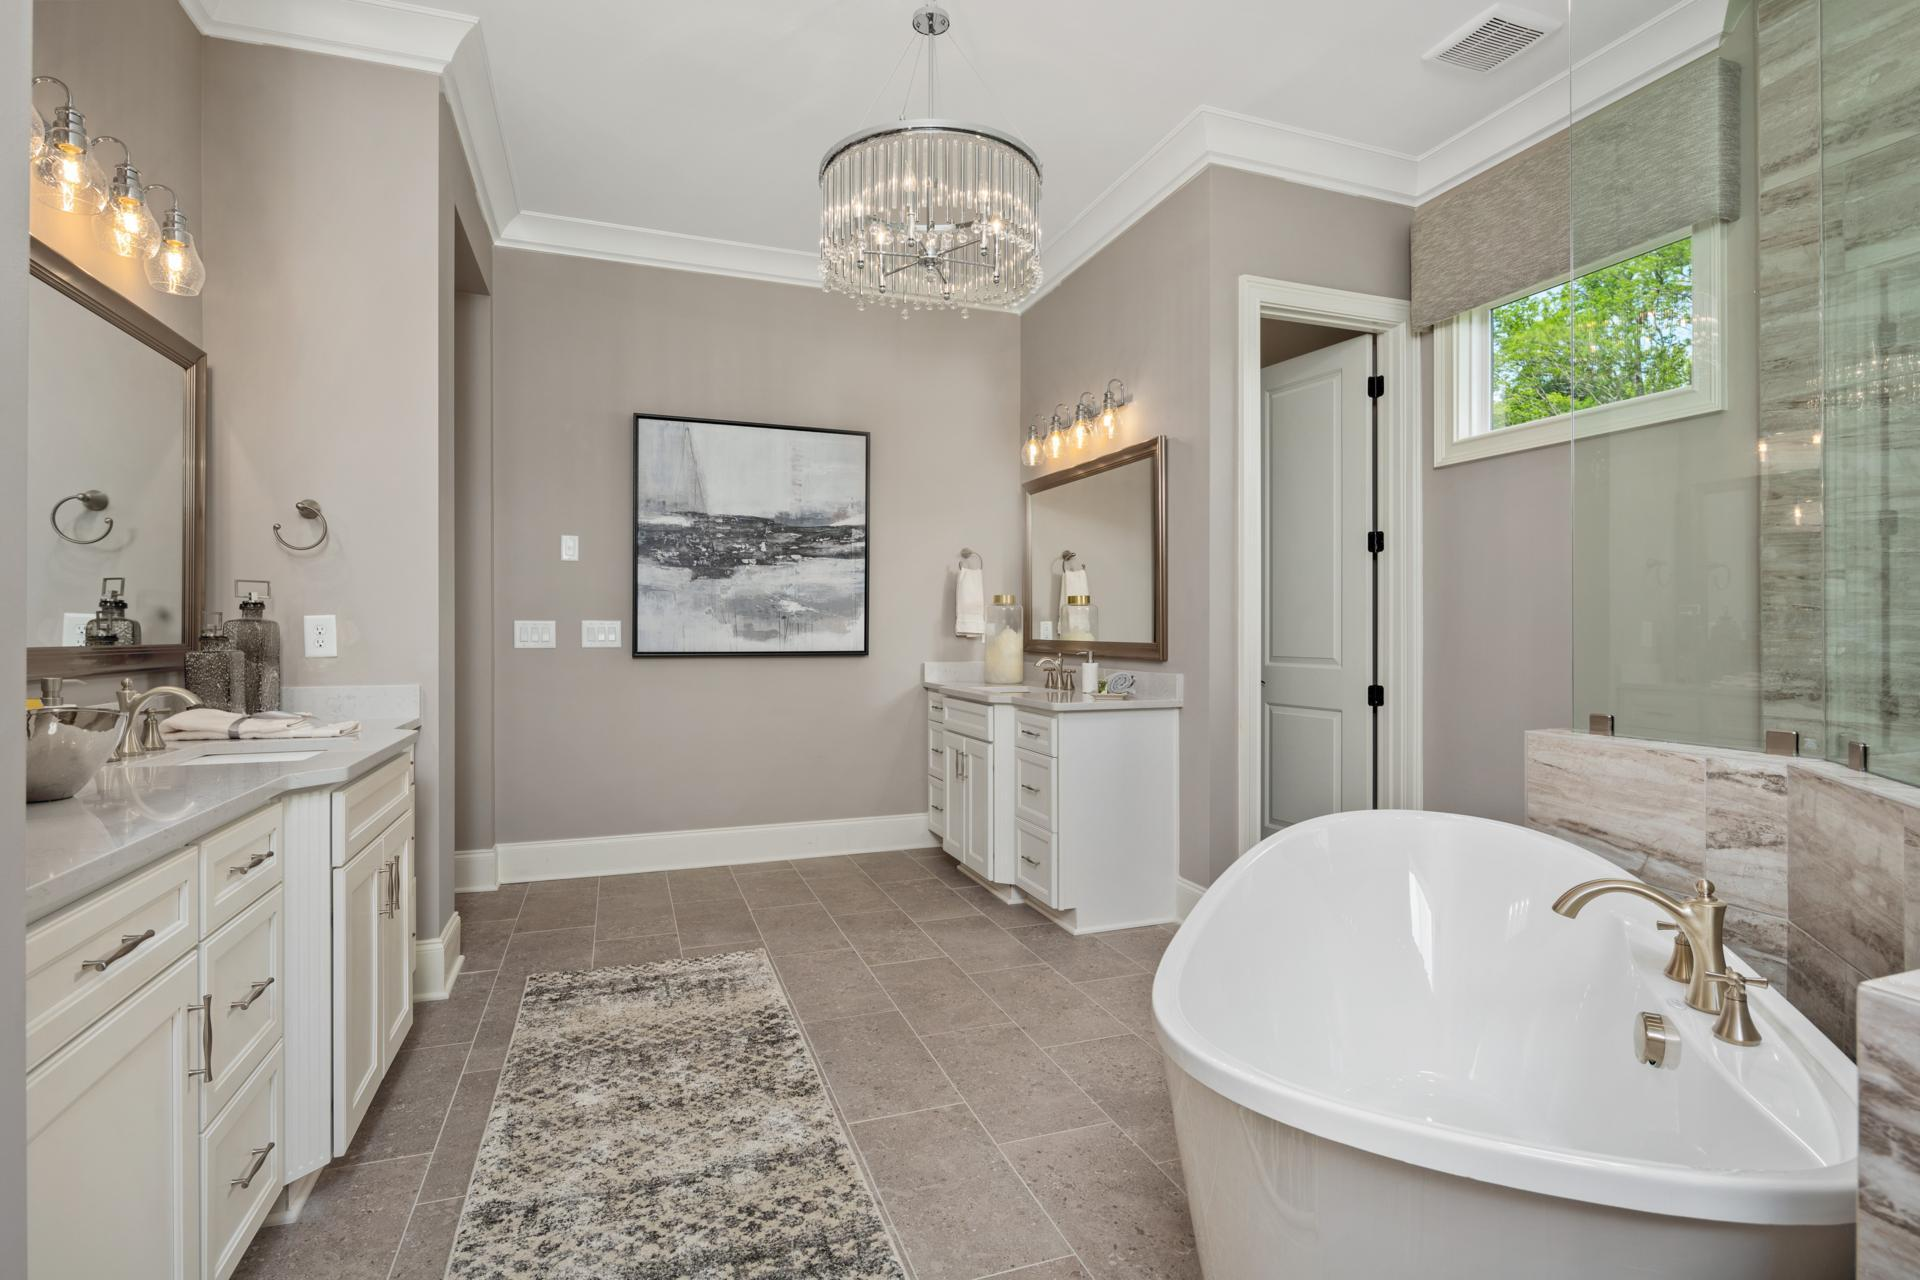 Bathroom featured in the Belterra By Drees Homes in Nashville, TN